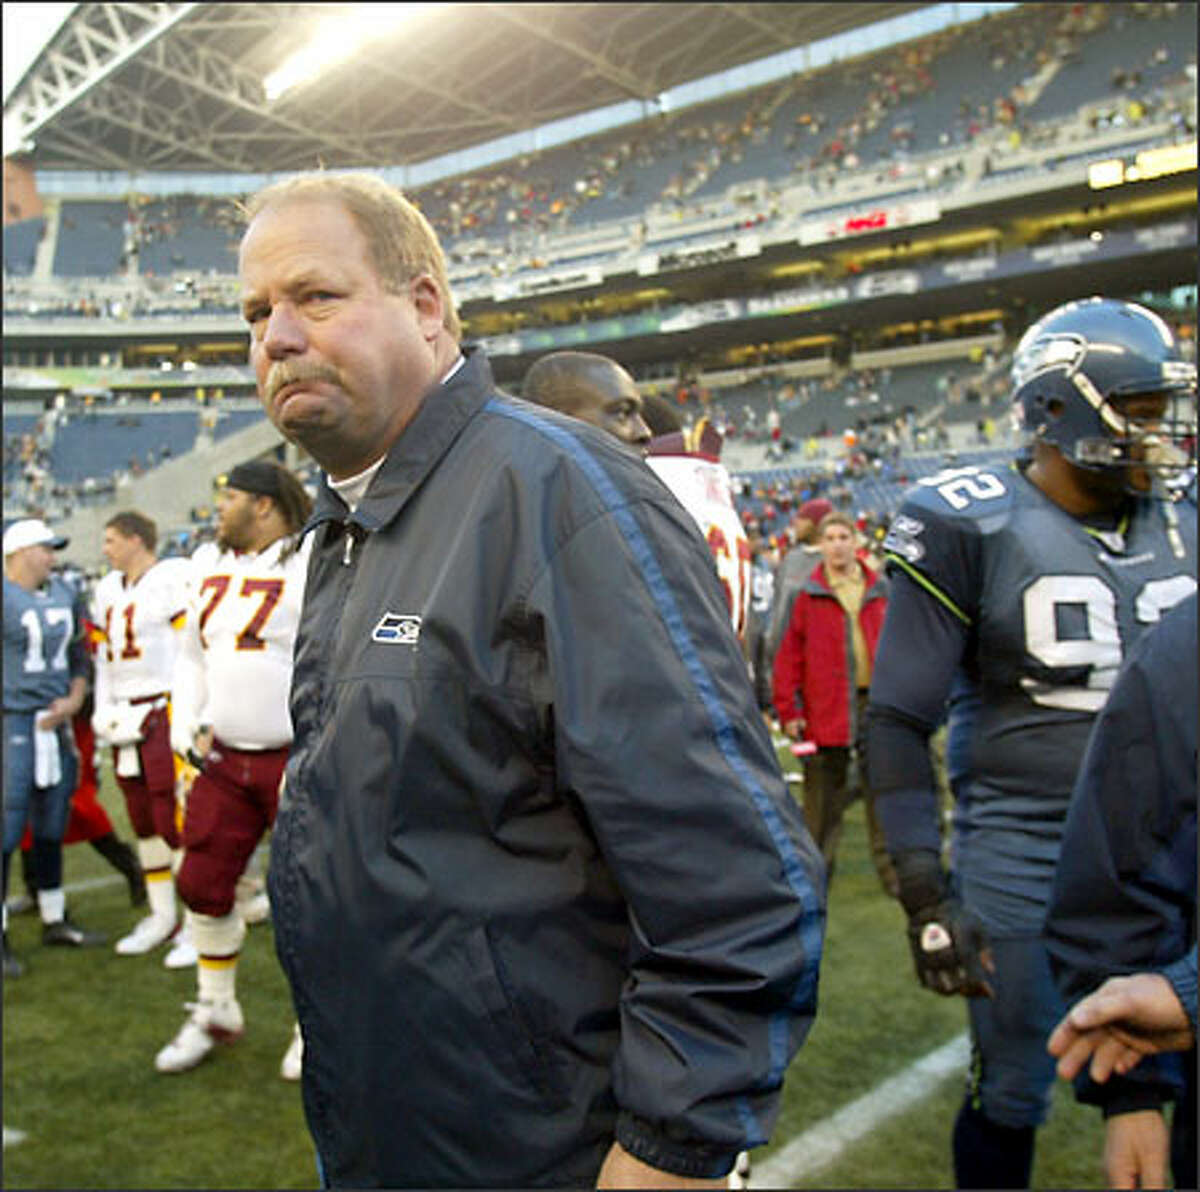 A sour Mike Holmgren walks off the field after the Seahawks' loss to Washington dropped his team to 2-6 at the midpoint of the NFL season.